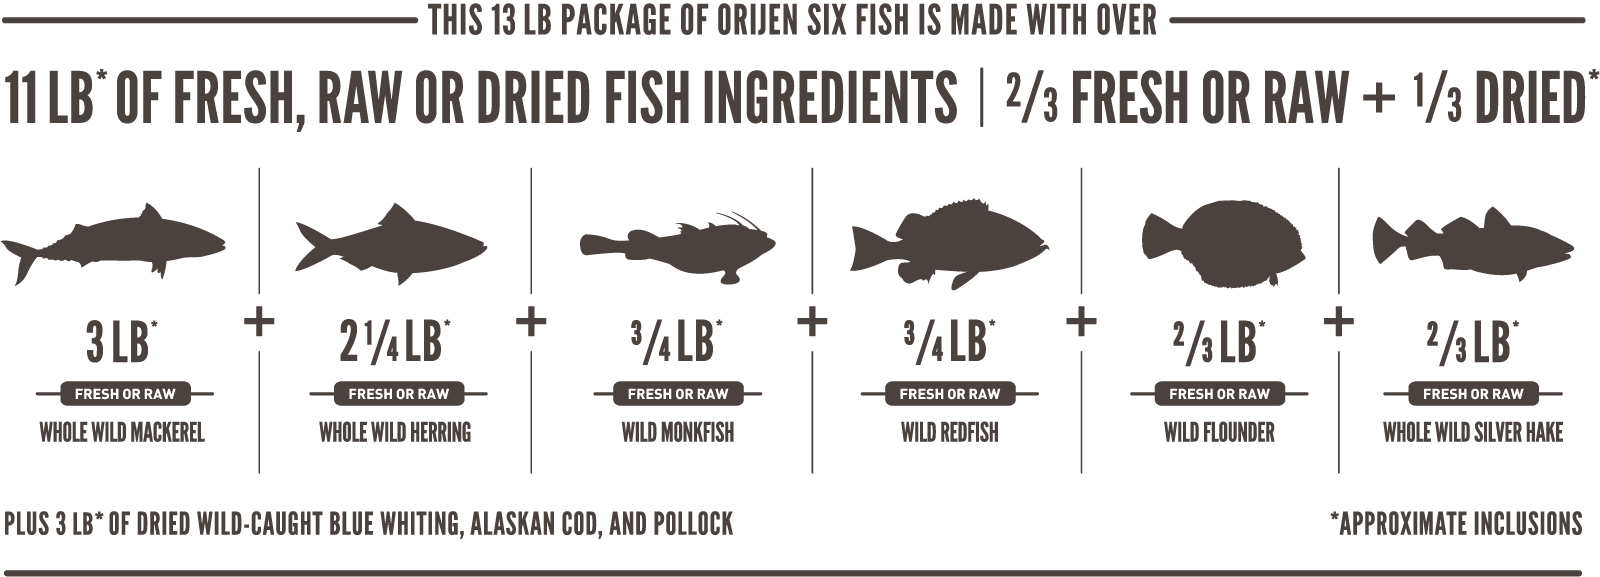 ORIJEN Six Fish Meatmath Formula and Dog Food Ingredients